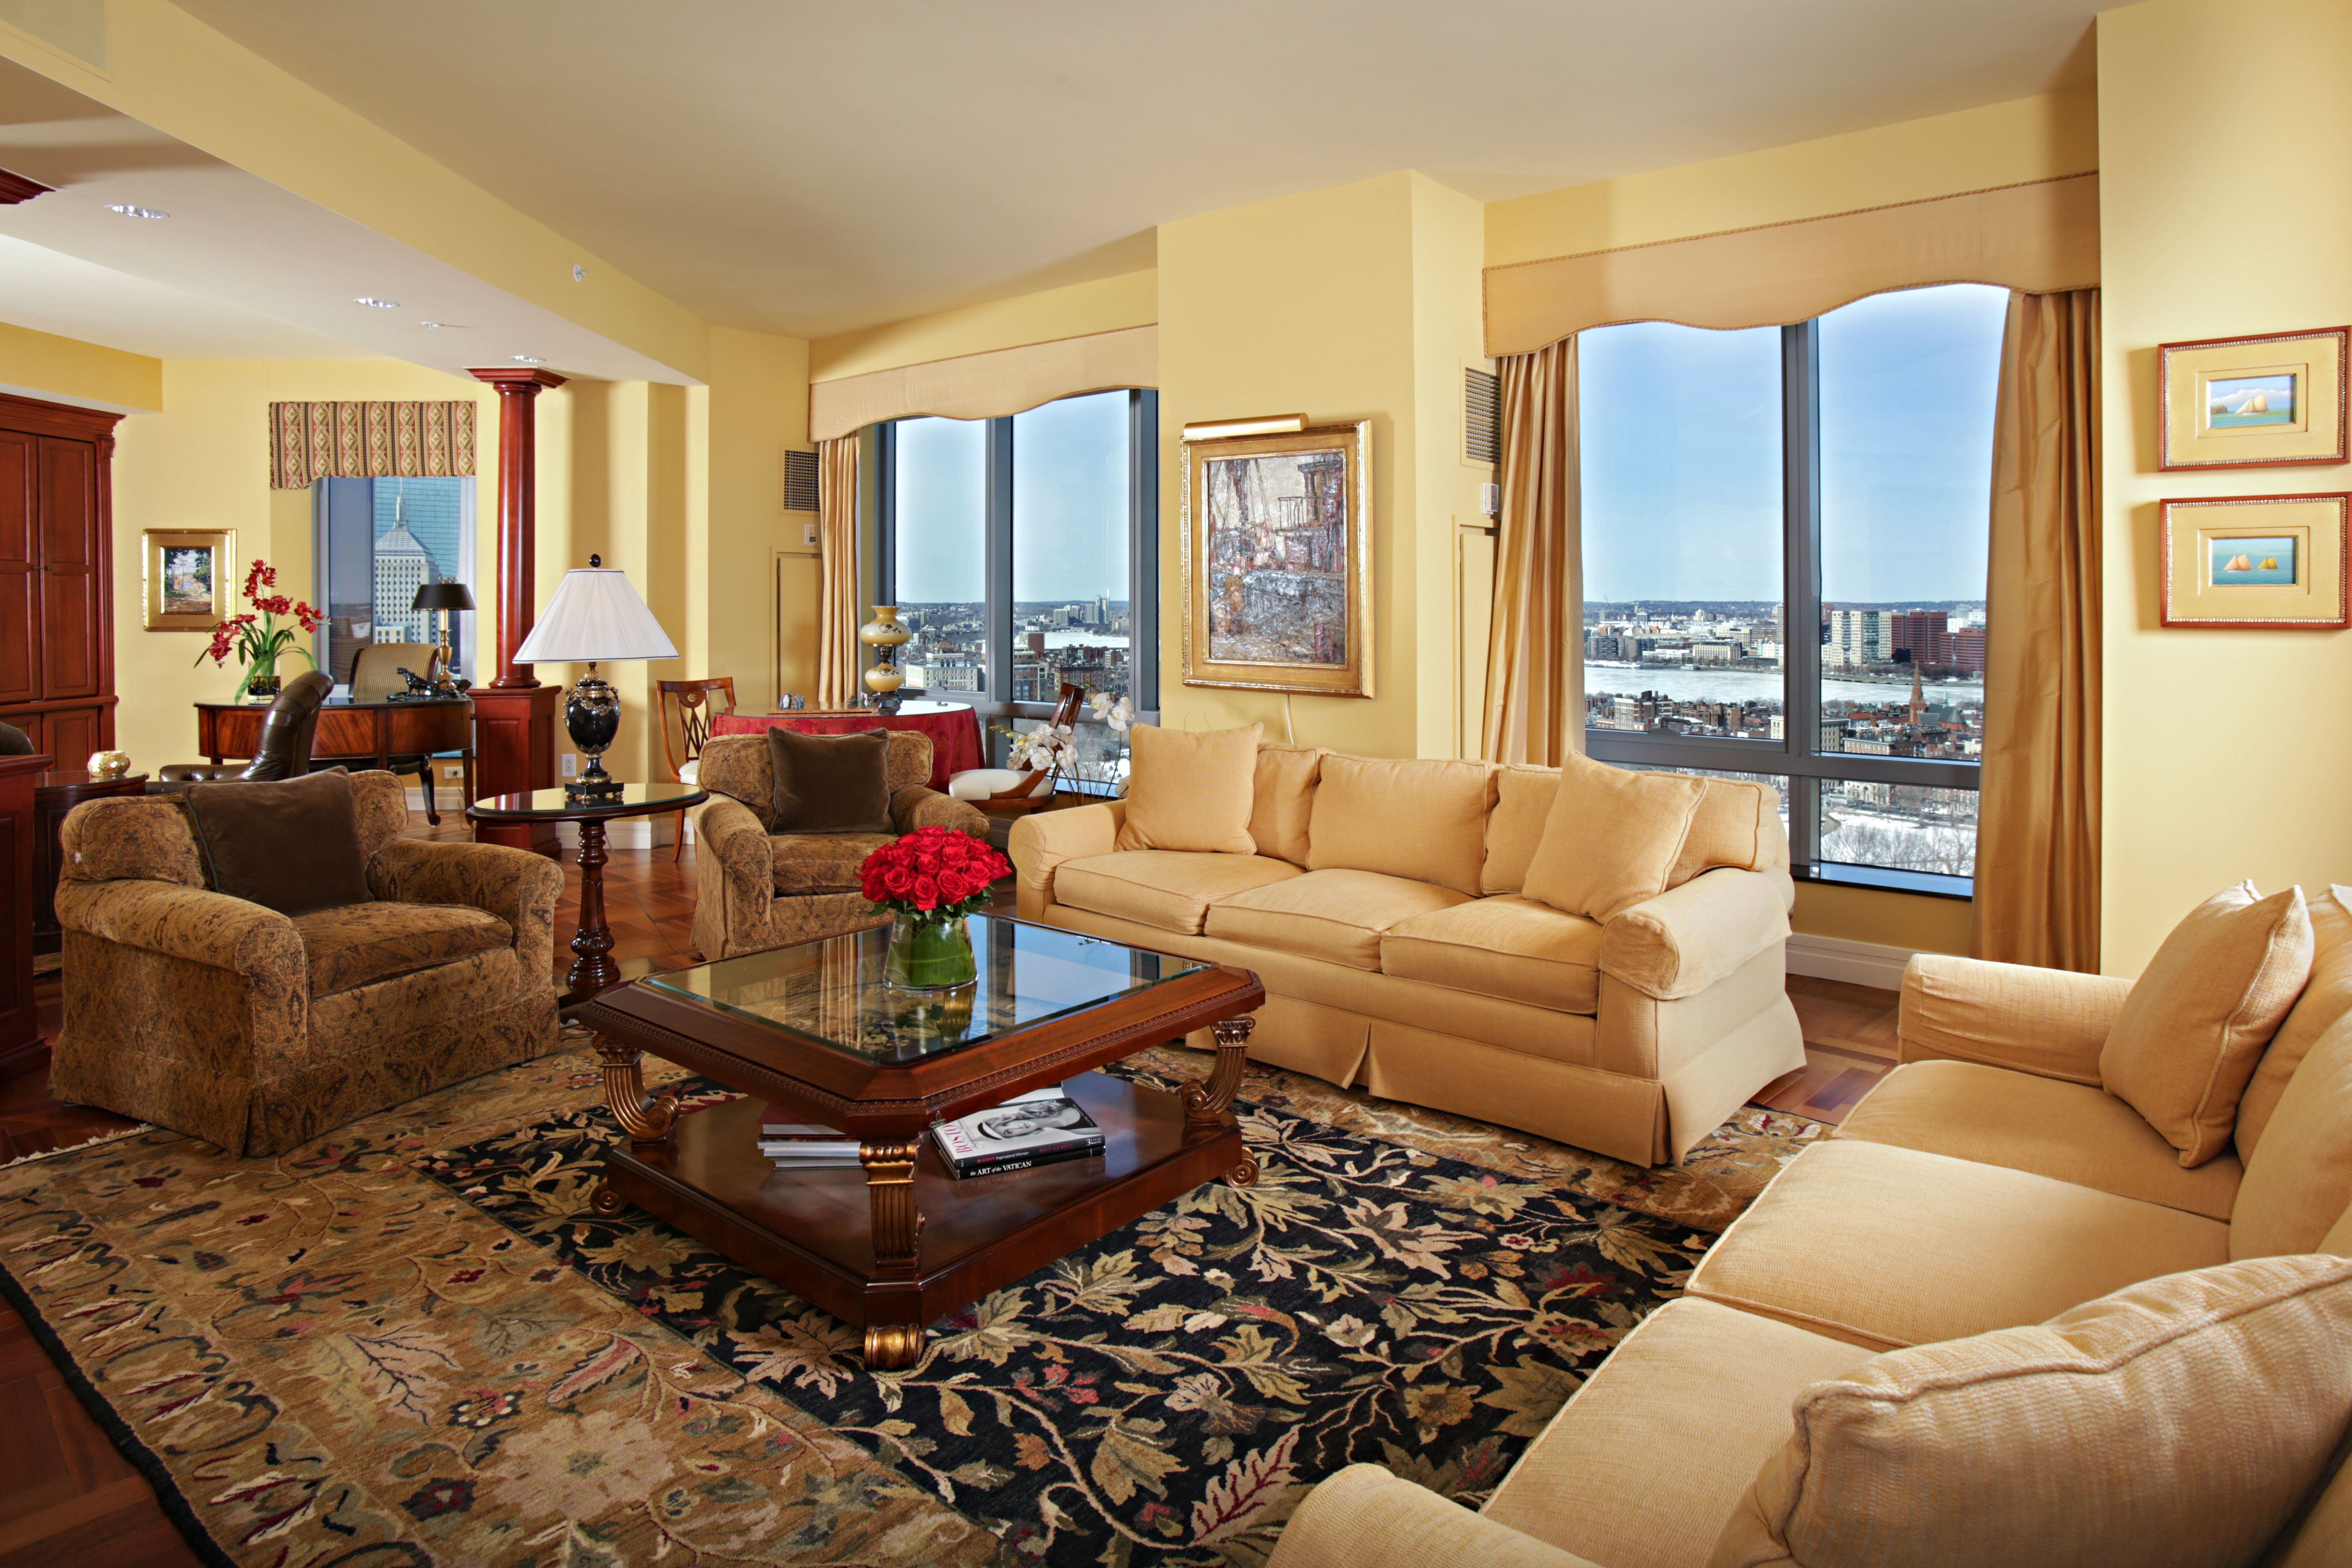 Citylife Real Estate is a fullservice luxury residential